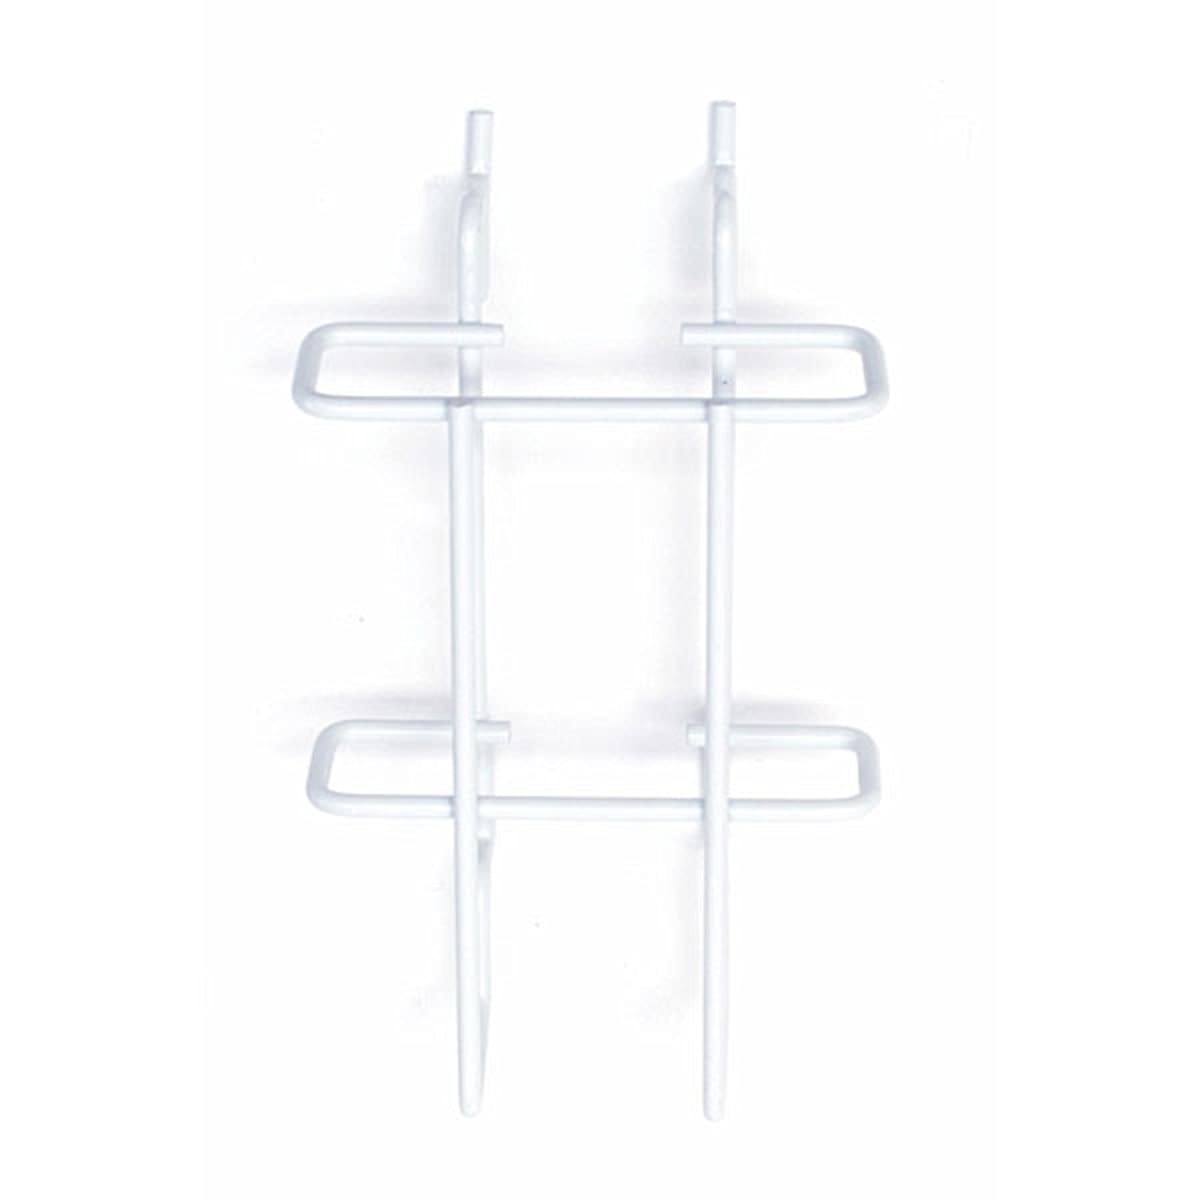 White OFFicial Literature Holder 4 W x 9 H Lot D 1 Inches of - 10 New Shipping Free